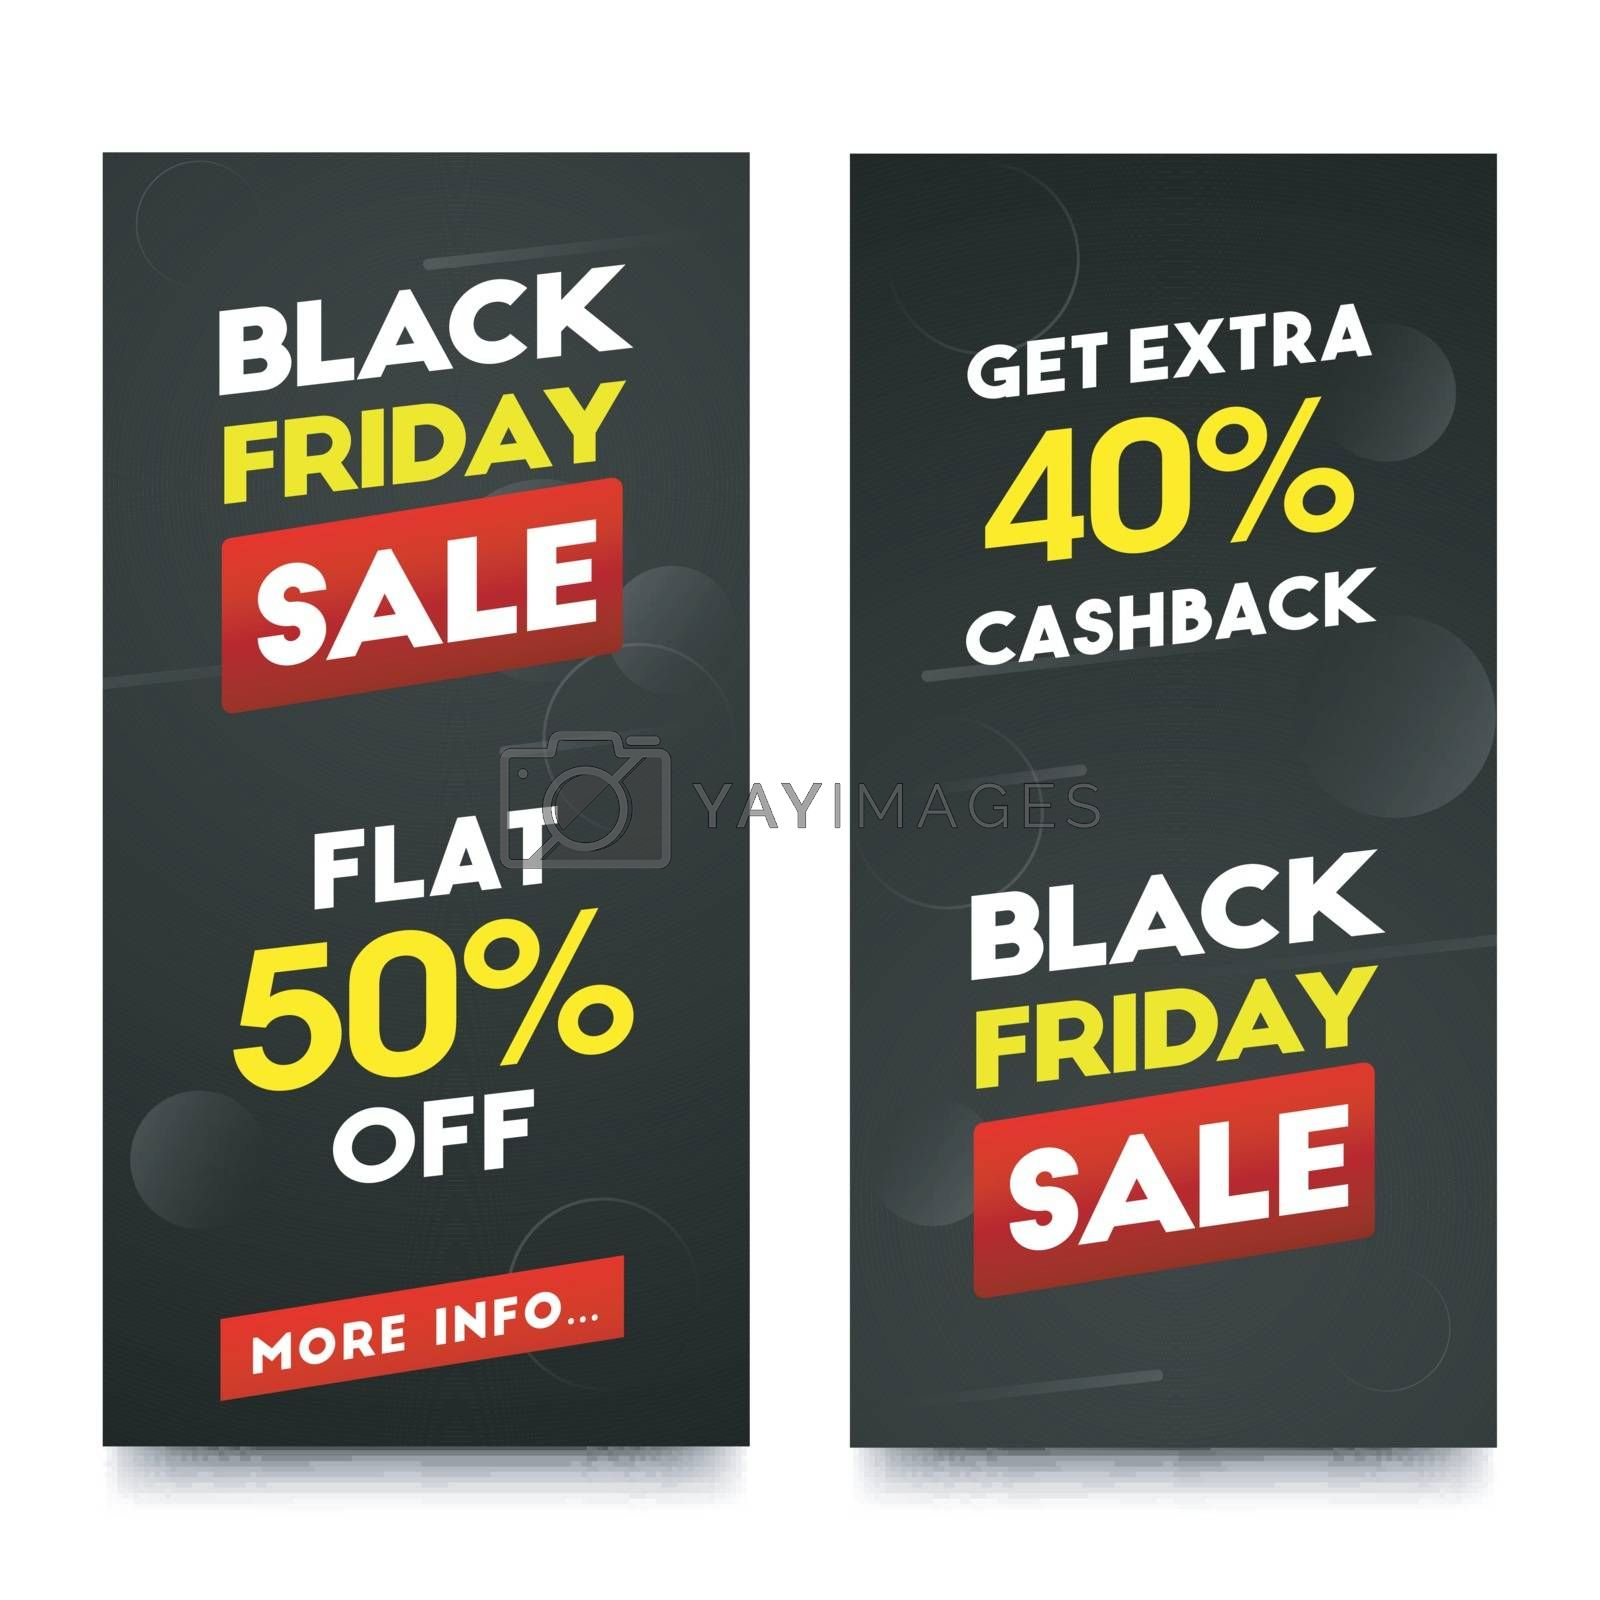 Sale banner or poster design with different discount offers for Black Friday.